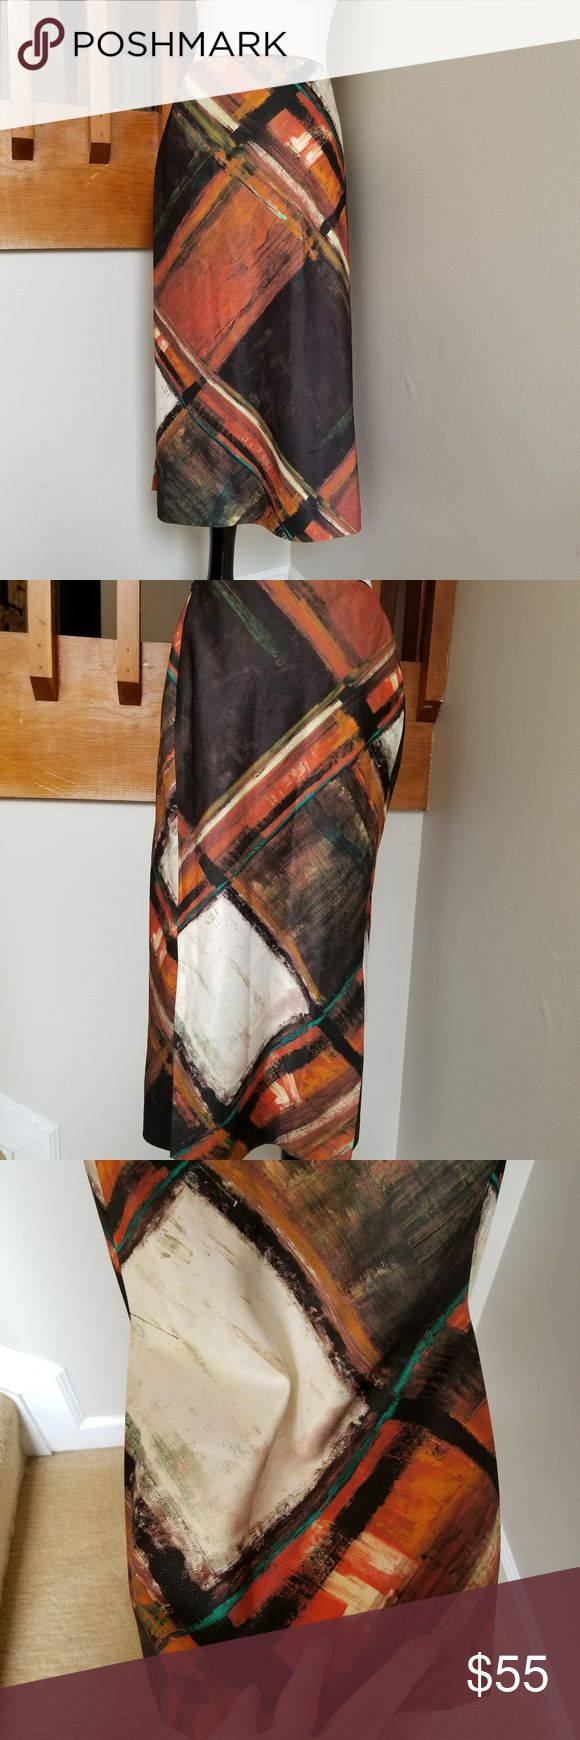 "Lafayette 148 Midi Skirt - size 14 Funky fully lined midi skirt by Lafayette 148. Great condition with two double slits in the back...awesome with a pair of boots or a pair of heels.  Waist 18"" Waist to Hem - 30.5"" Hips 22.5"" Double slits 10""  Non-smoking environment.  Welcoming offers and questions!! Lafayette 148 New York Skirts Midi"